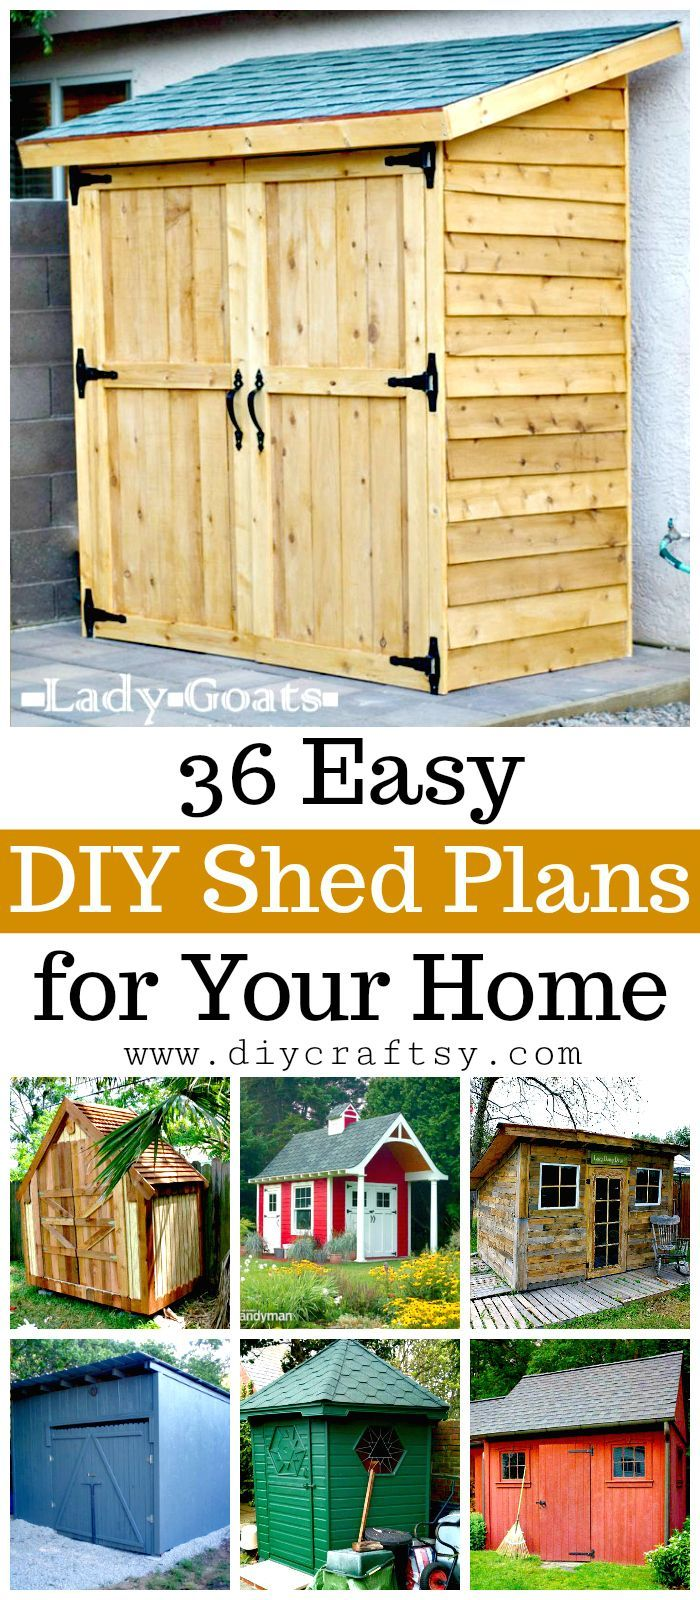 DIY Shed Plans - 36 Easy DIY Shed Designs for Your Home